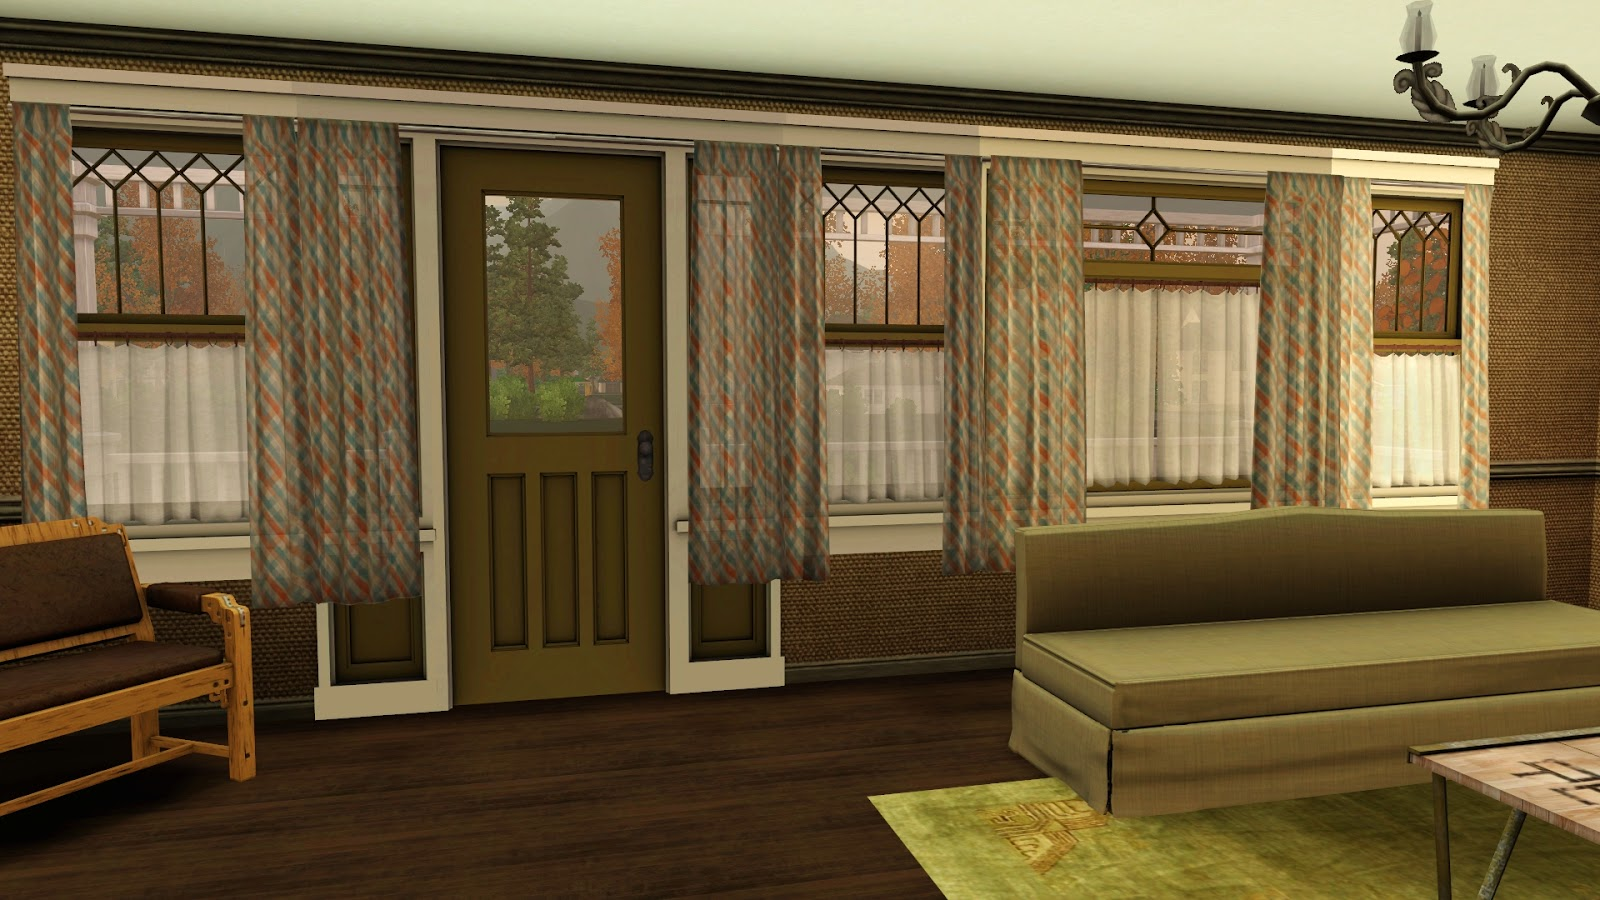 My Sims 3 Blog Welcome To Grant Park Craftsman Chic